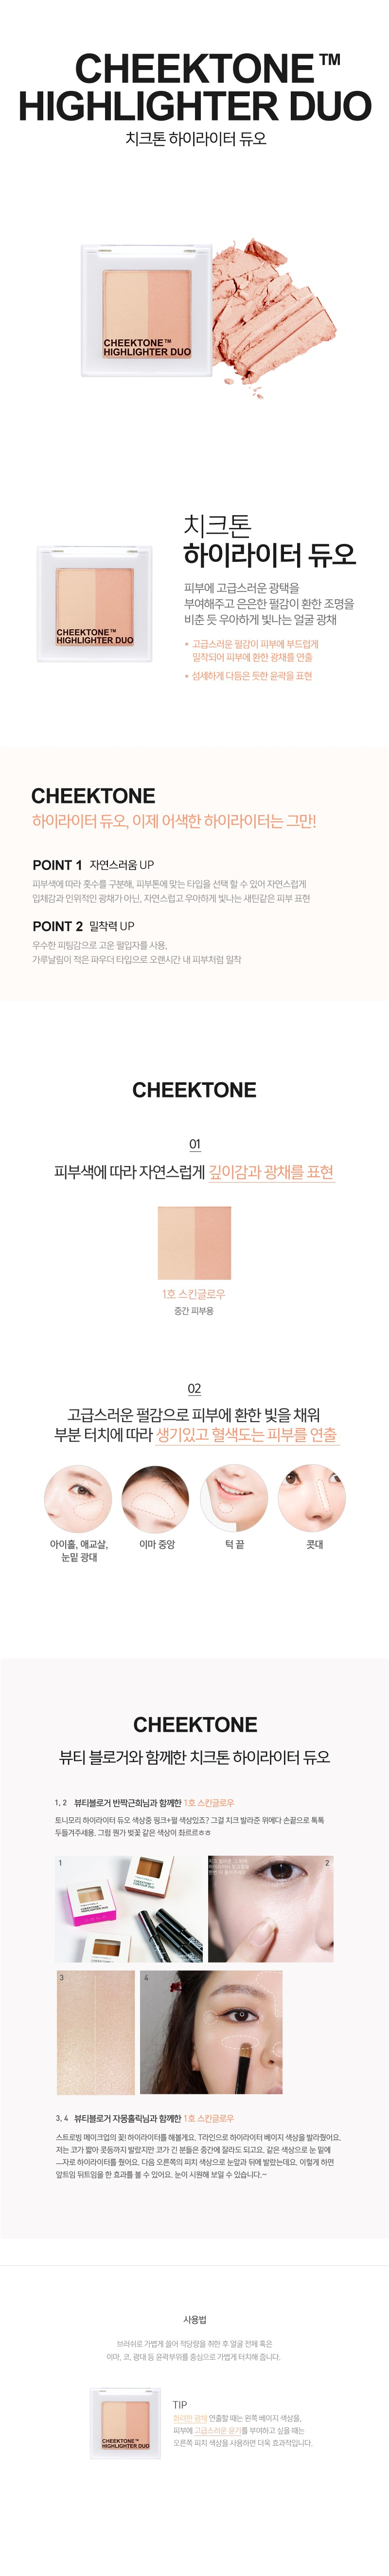 Tony Moly Cheektone Highlighter Duo korean cosmetic makeup product online shop malaysia spain portugal11